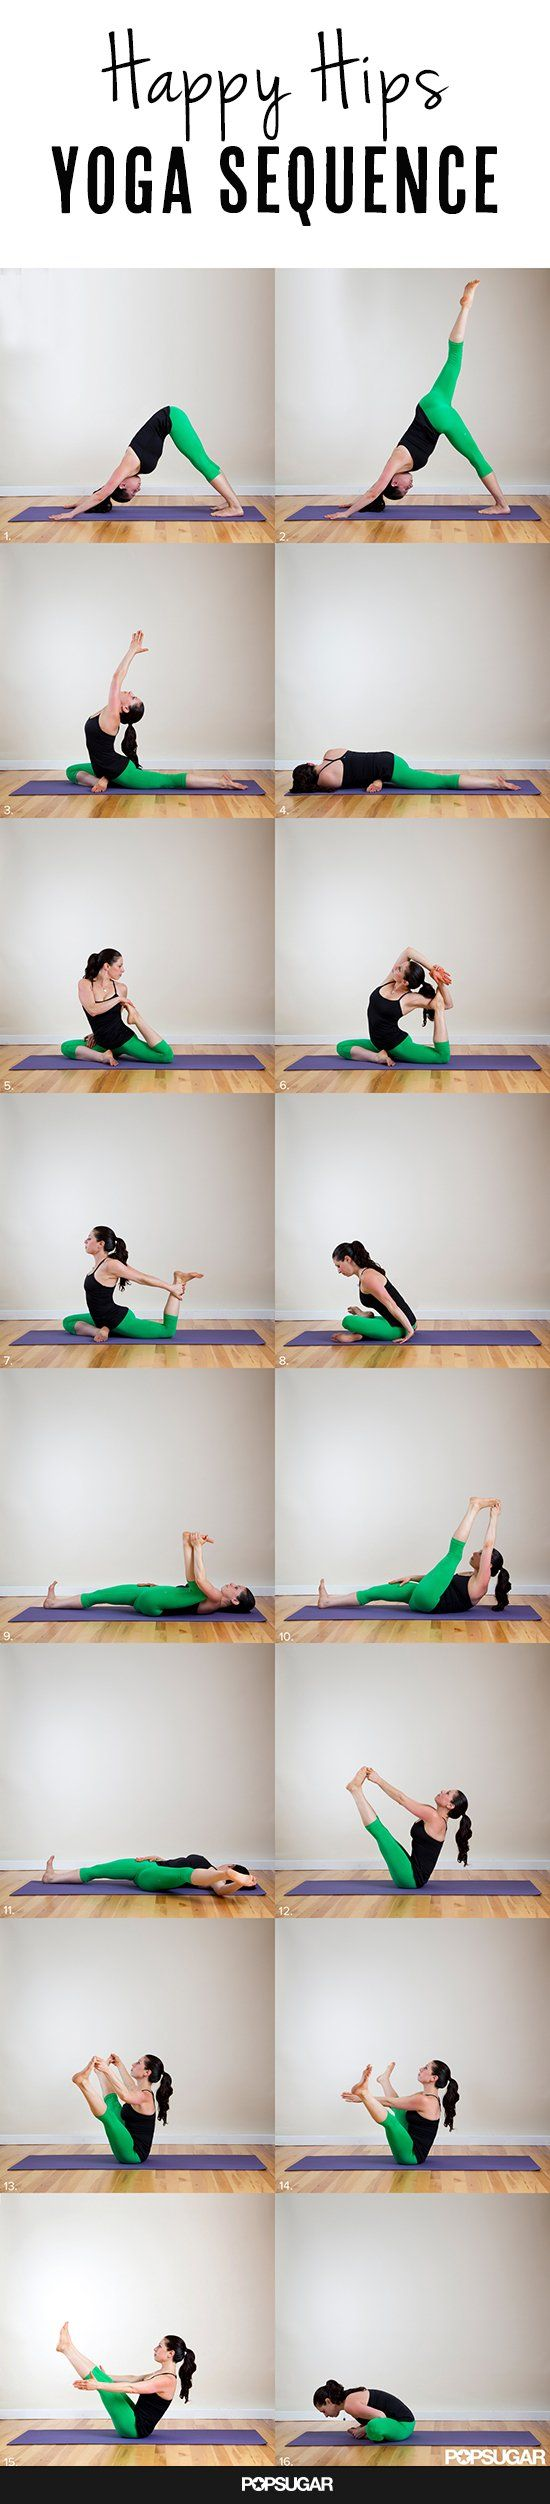 You'll Want to Unroll Your Mat For This Happy Hips Yoga Sequence